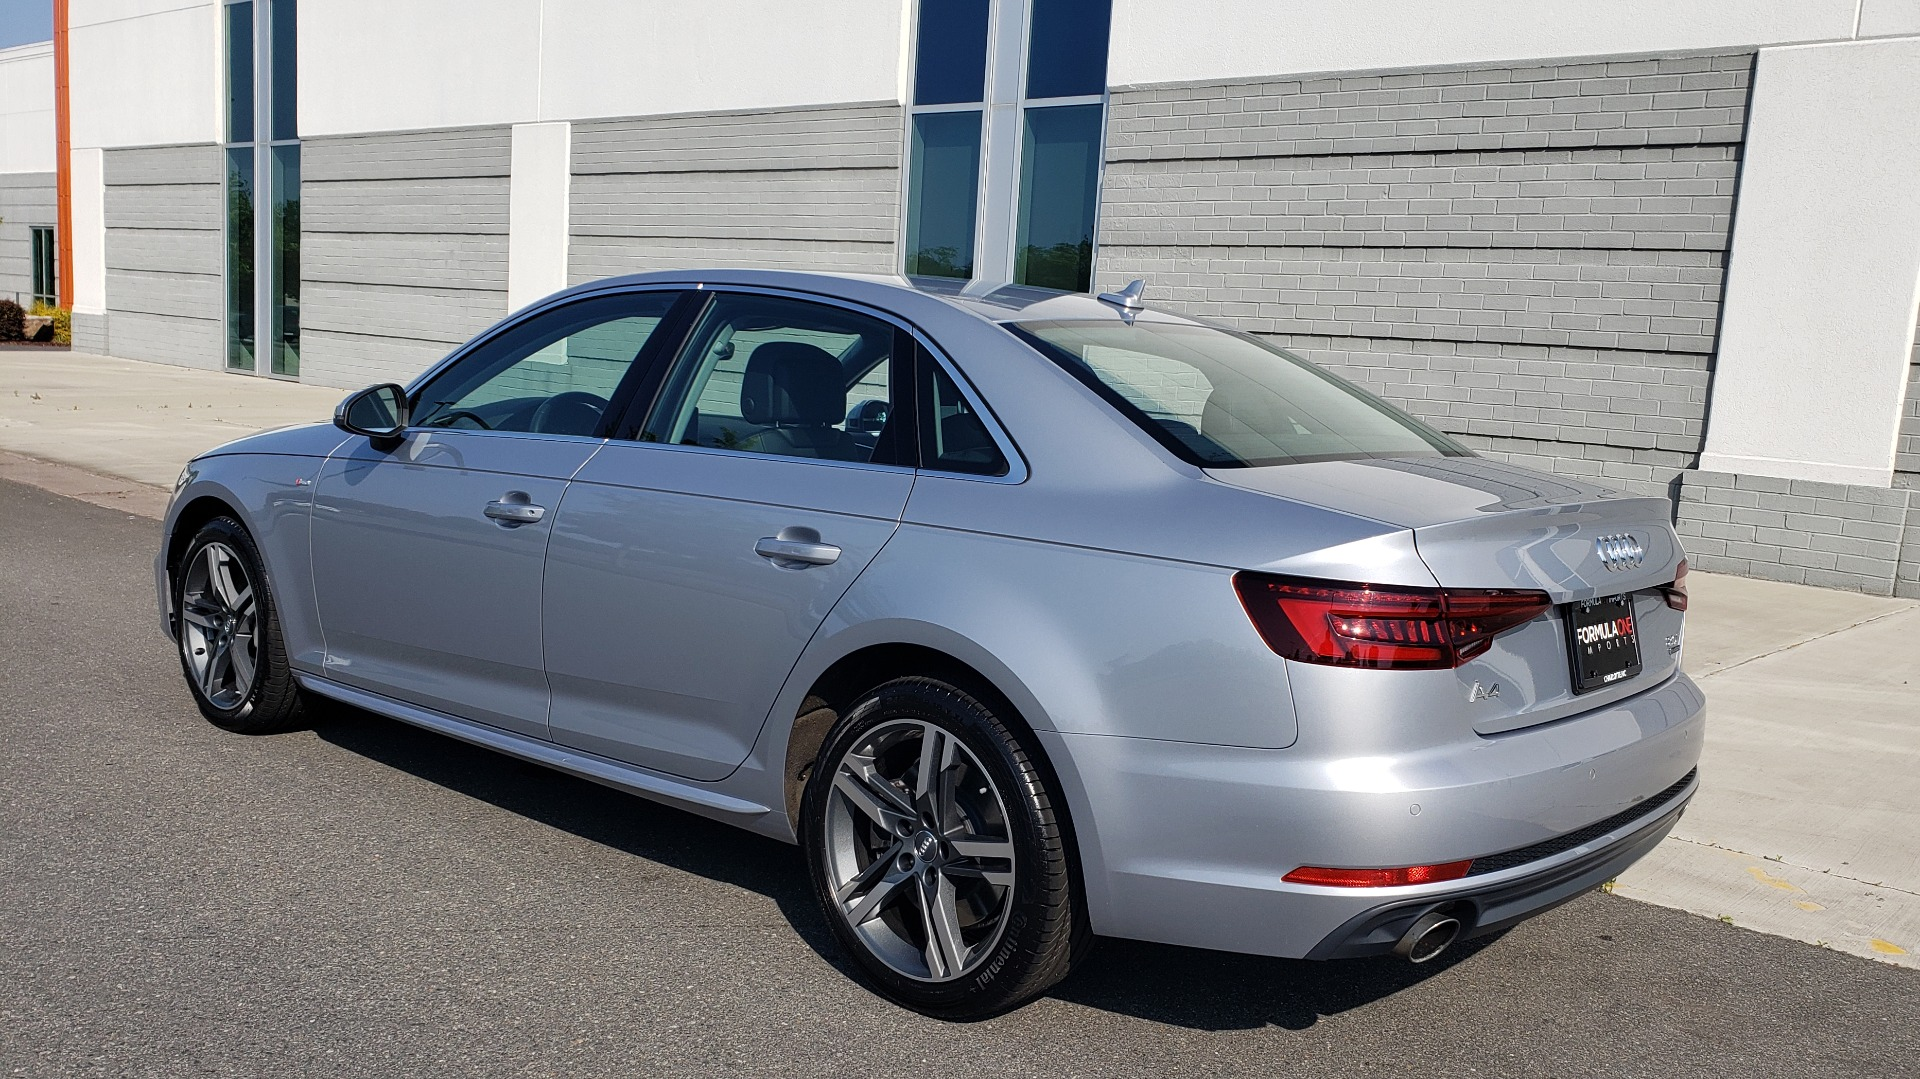 Used 2018 Audi A4 PREMIUM PLUS 2.0T / NAV / SUNROOF / B&O SND / CLD WTHR / REARVIEW for sale $29,395 at Formula Imports in Charlotte NC 28227 7